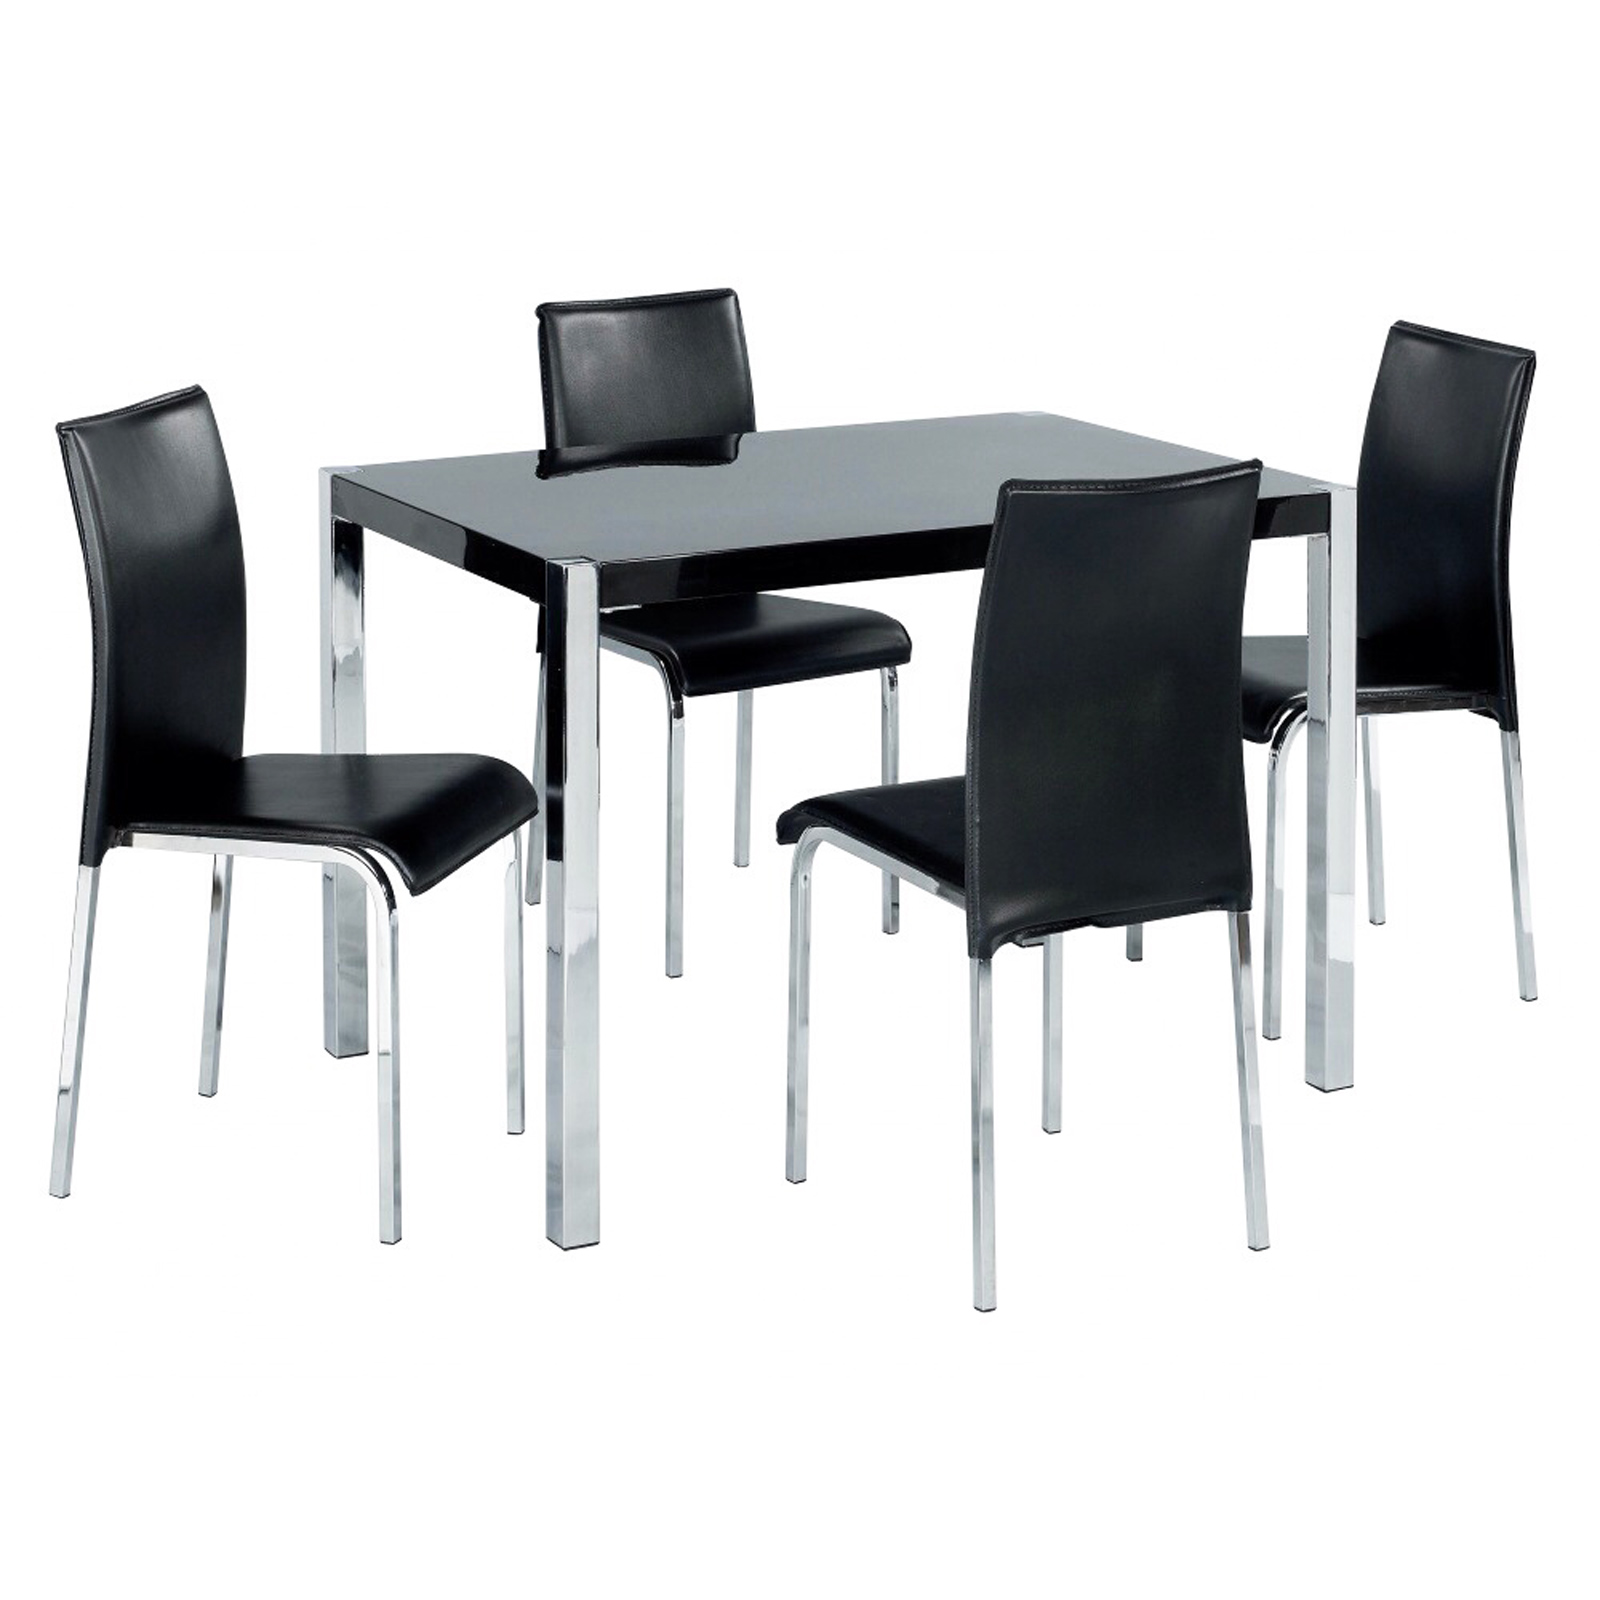 Hygena Black Gloss Stylish Modern Wooden Kitchen Dining Table 120cm EBay